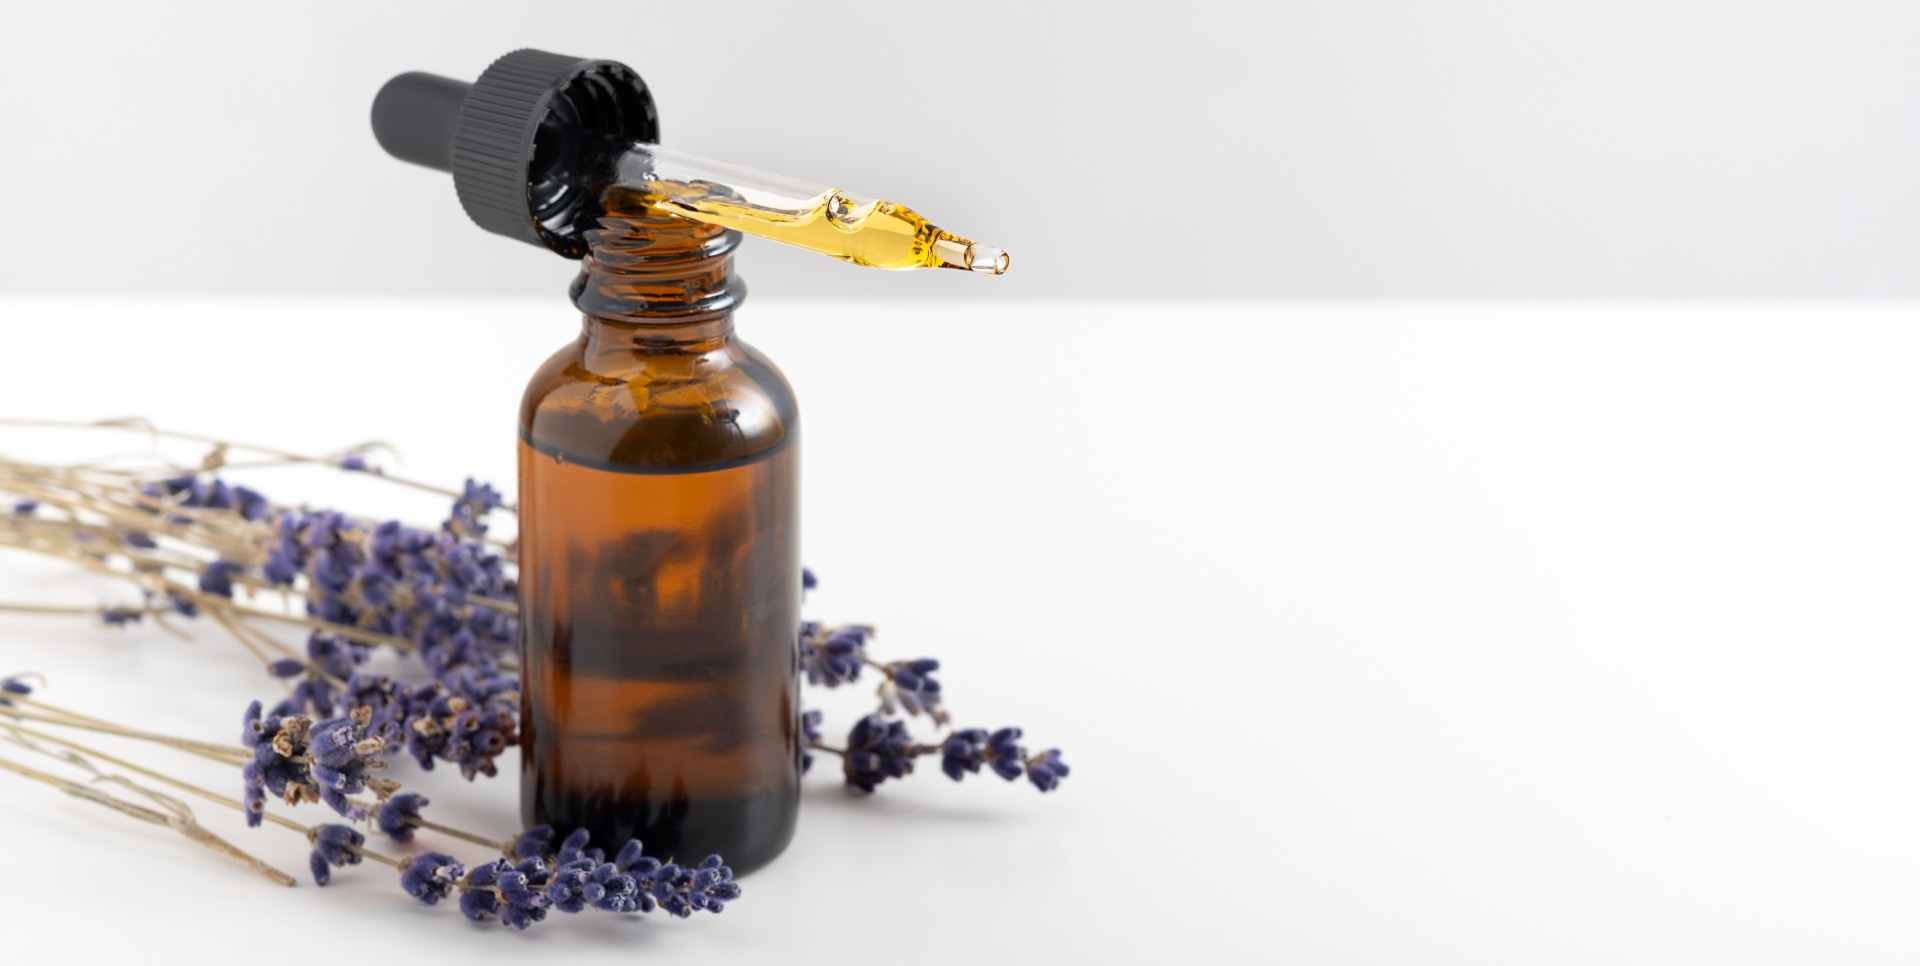 Essential oil bottle with lavender branches near by